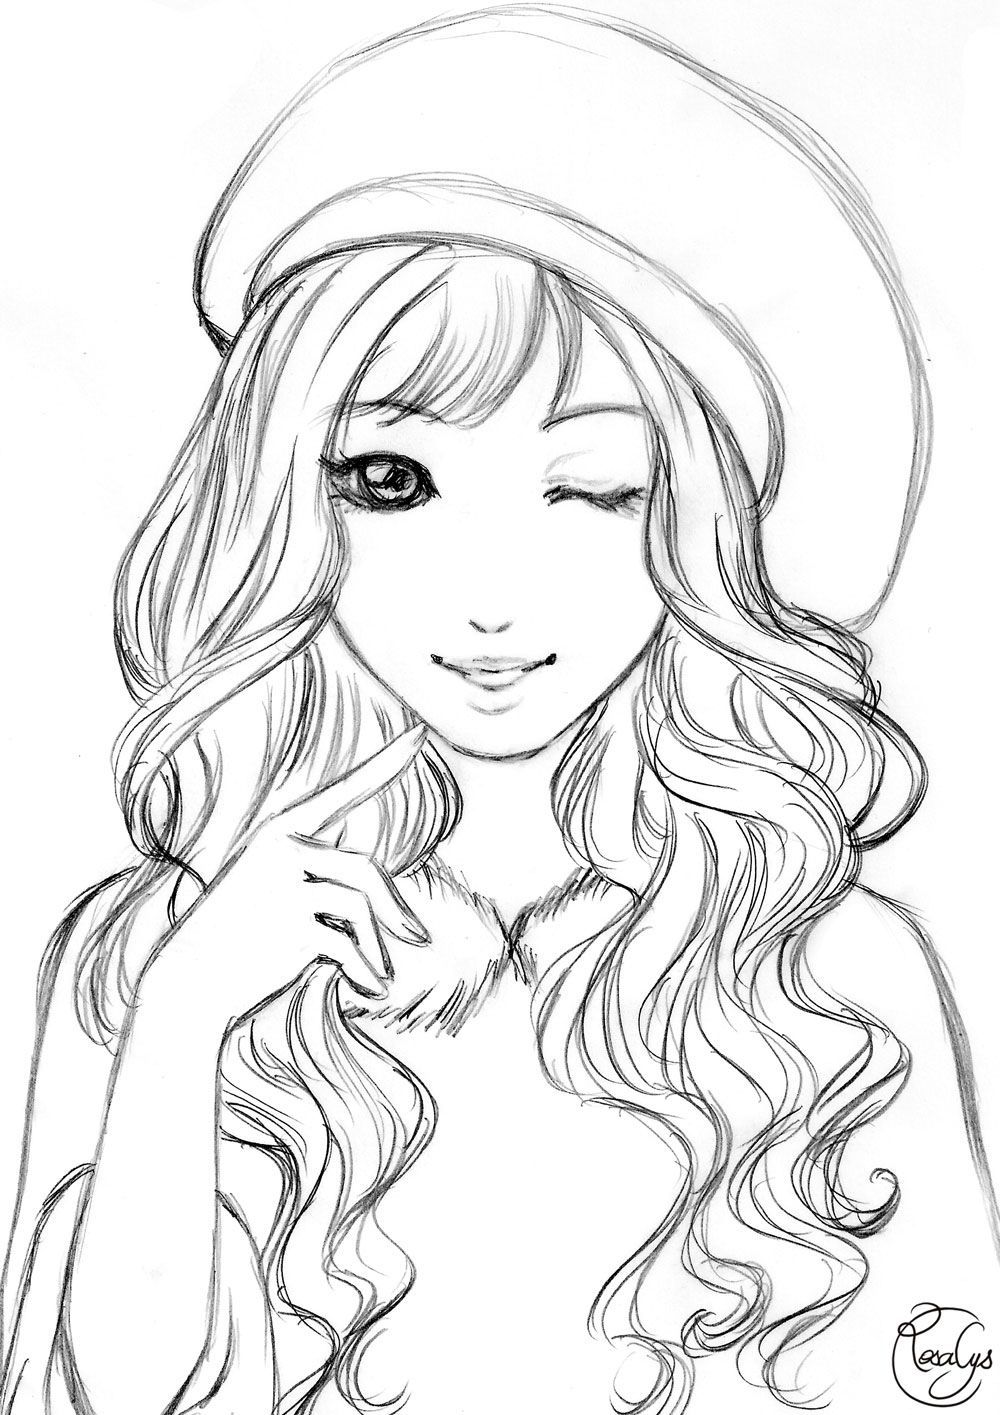 coloring pages of girls realistic outline of girl coloring pages png image transparent png coloring girls of realistic pages